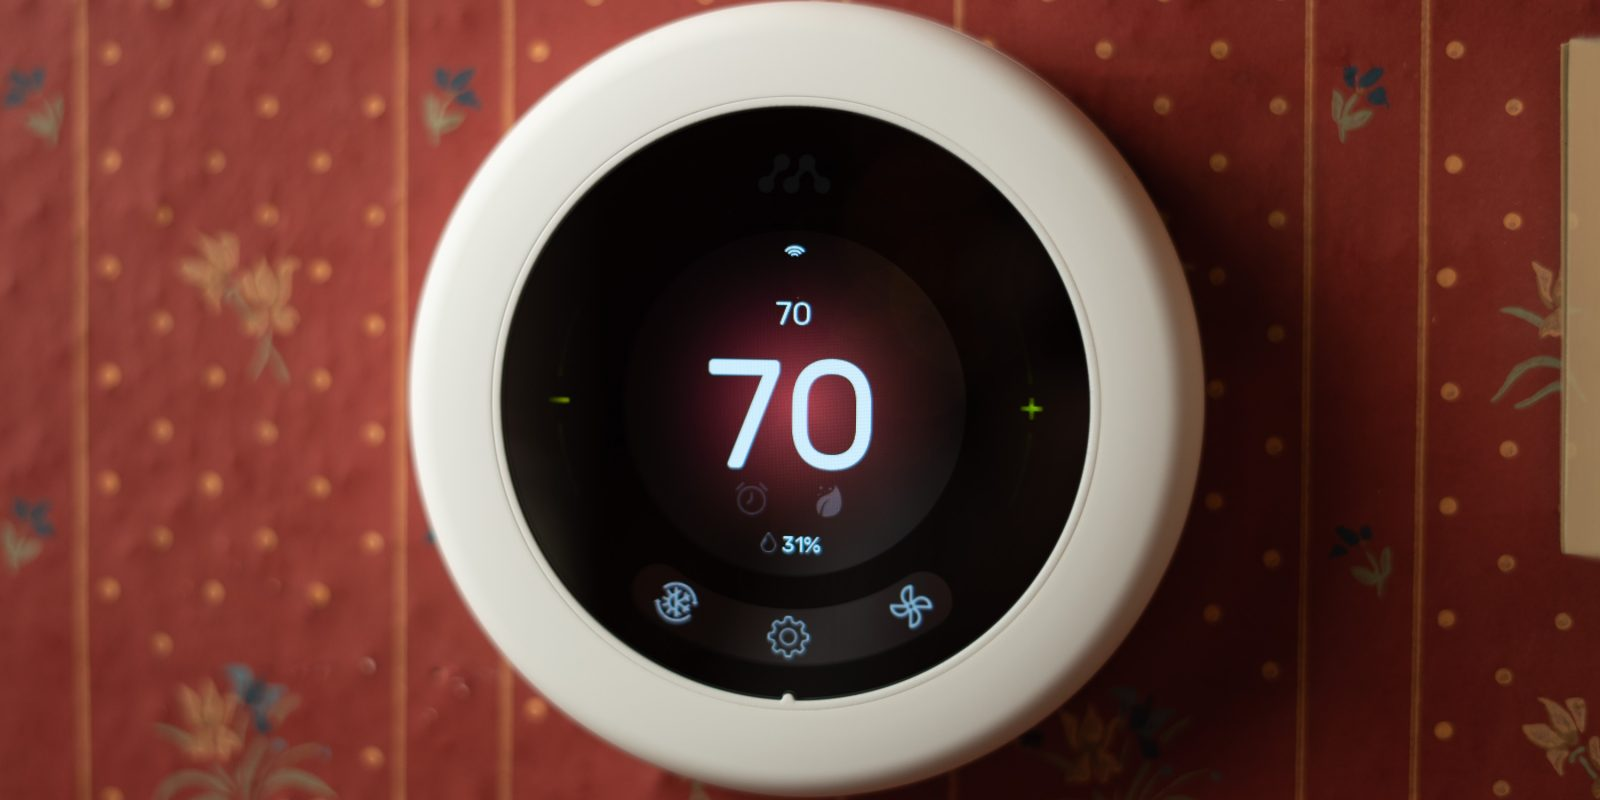 Momentum Smart Thermostat Review: Software updates deliver improved experience [Video]